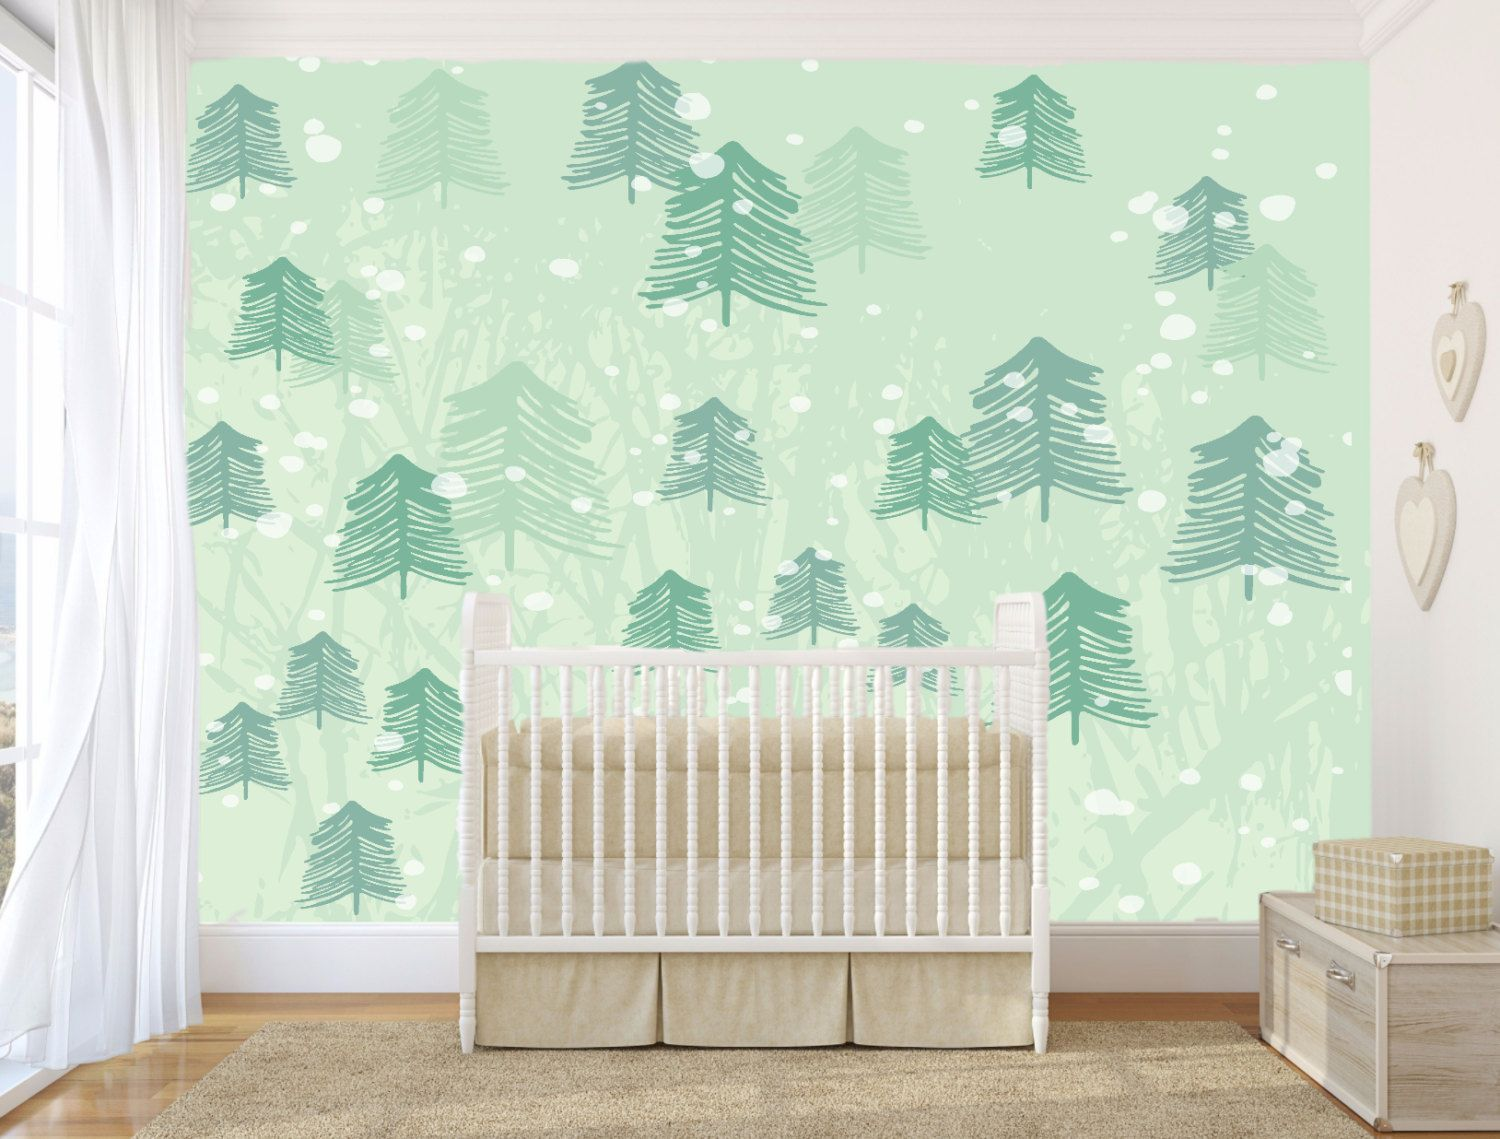 Self adhesive wall mural our wall murals are printed on an self adhesive wall mural our wall murals are printed on an innovative self adhesive removable material which allows them to be applied without paste or amipublicfo Image collections